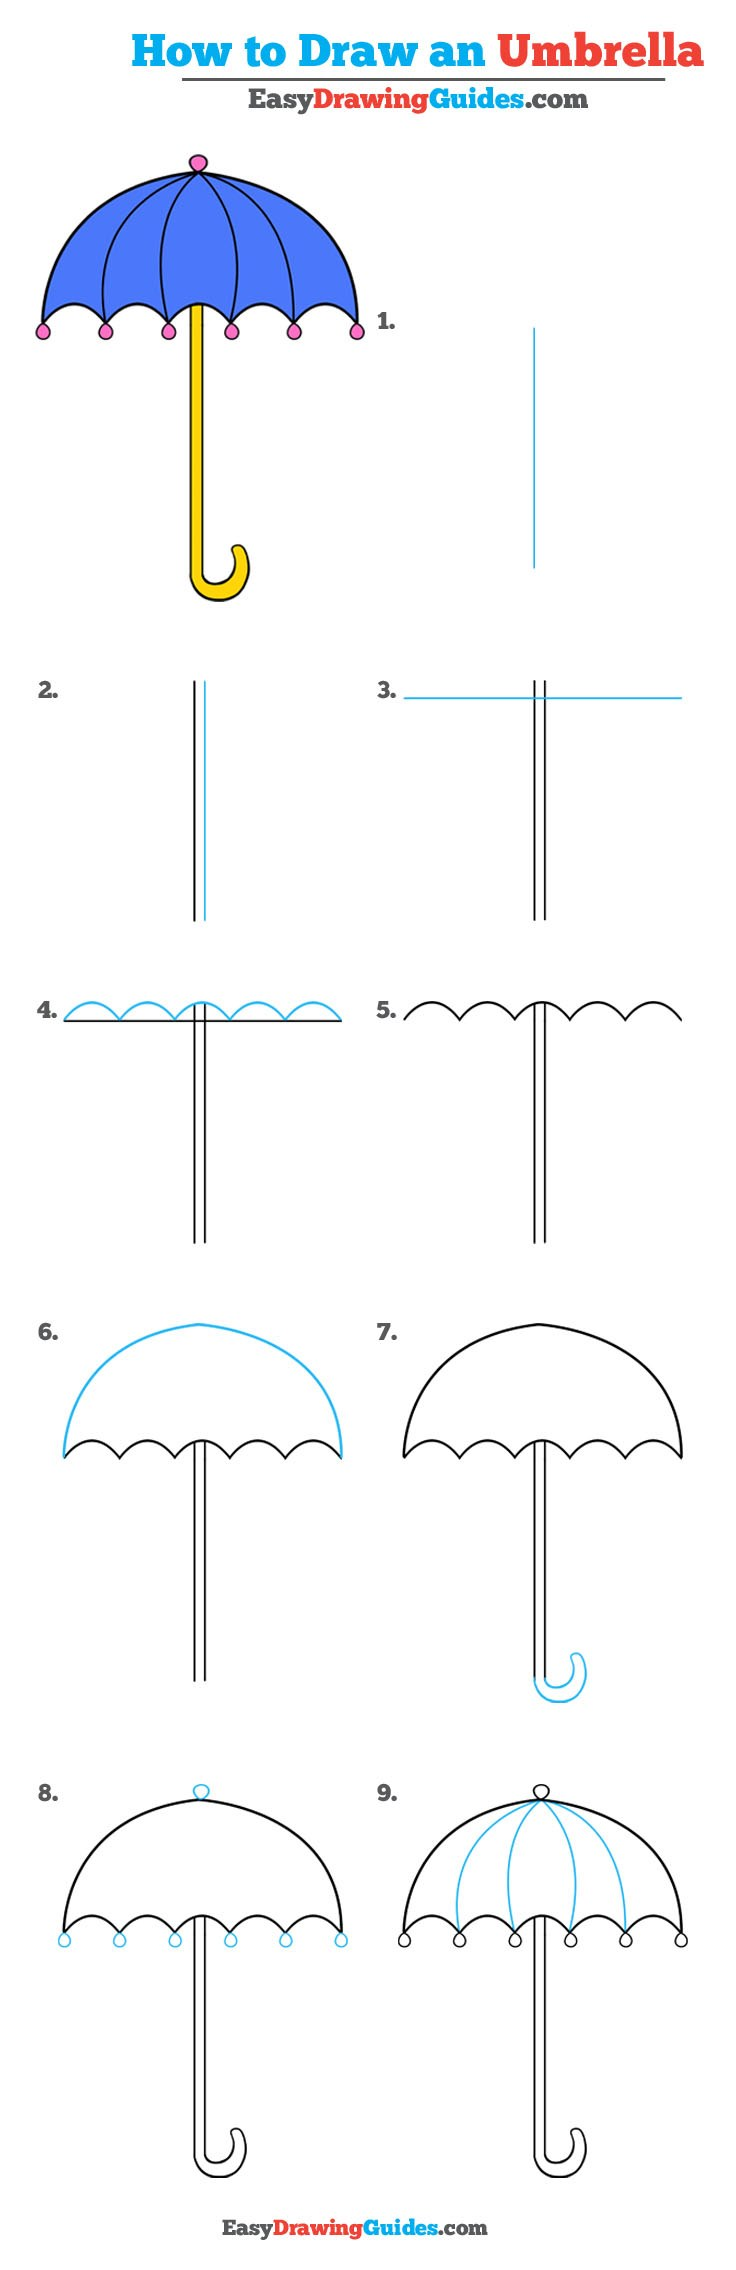 How to Draw an Umbrella - Really Easy Drawing Tutorial